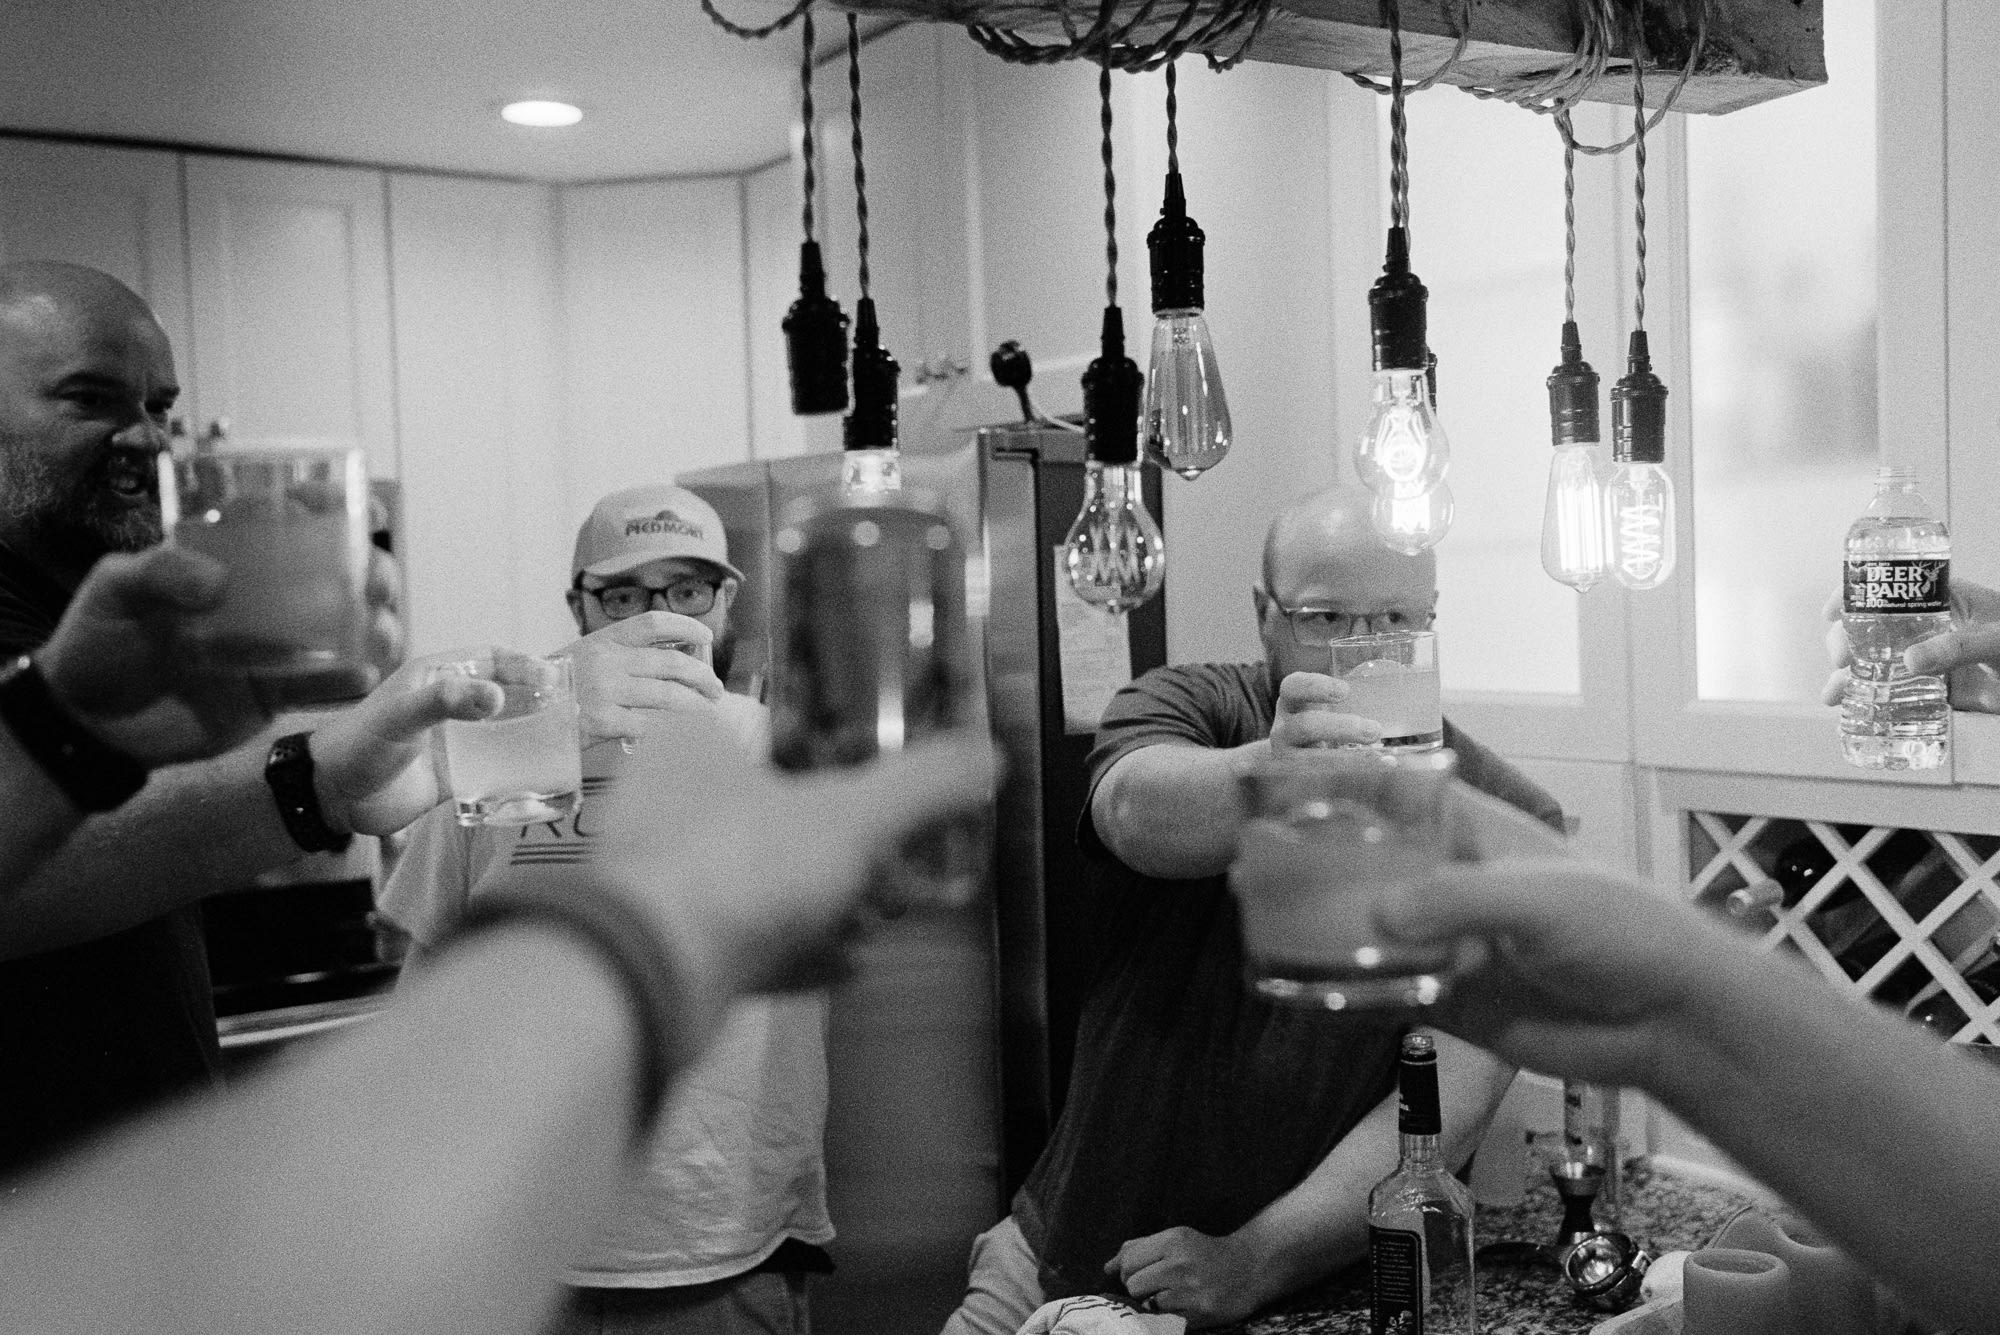 people holding up various drinks in celebration